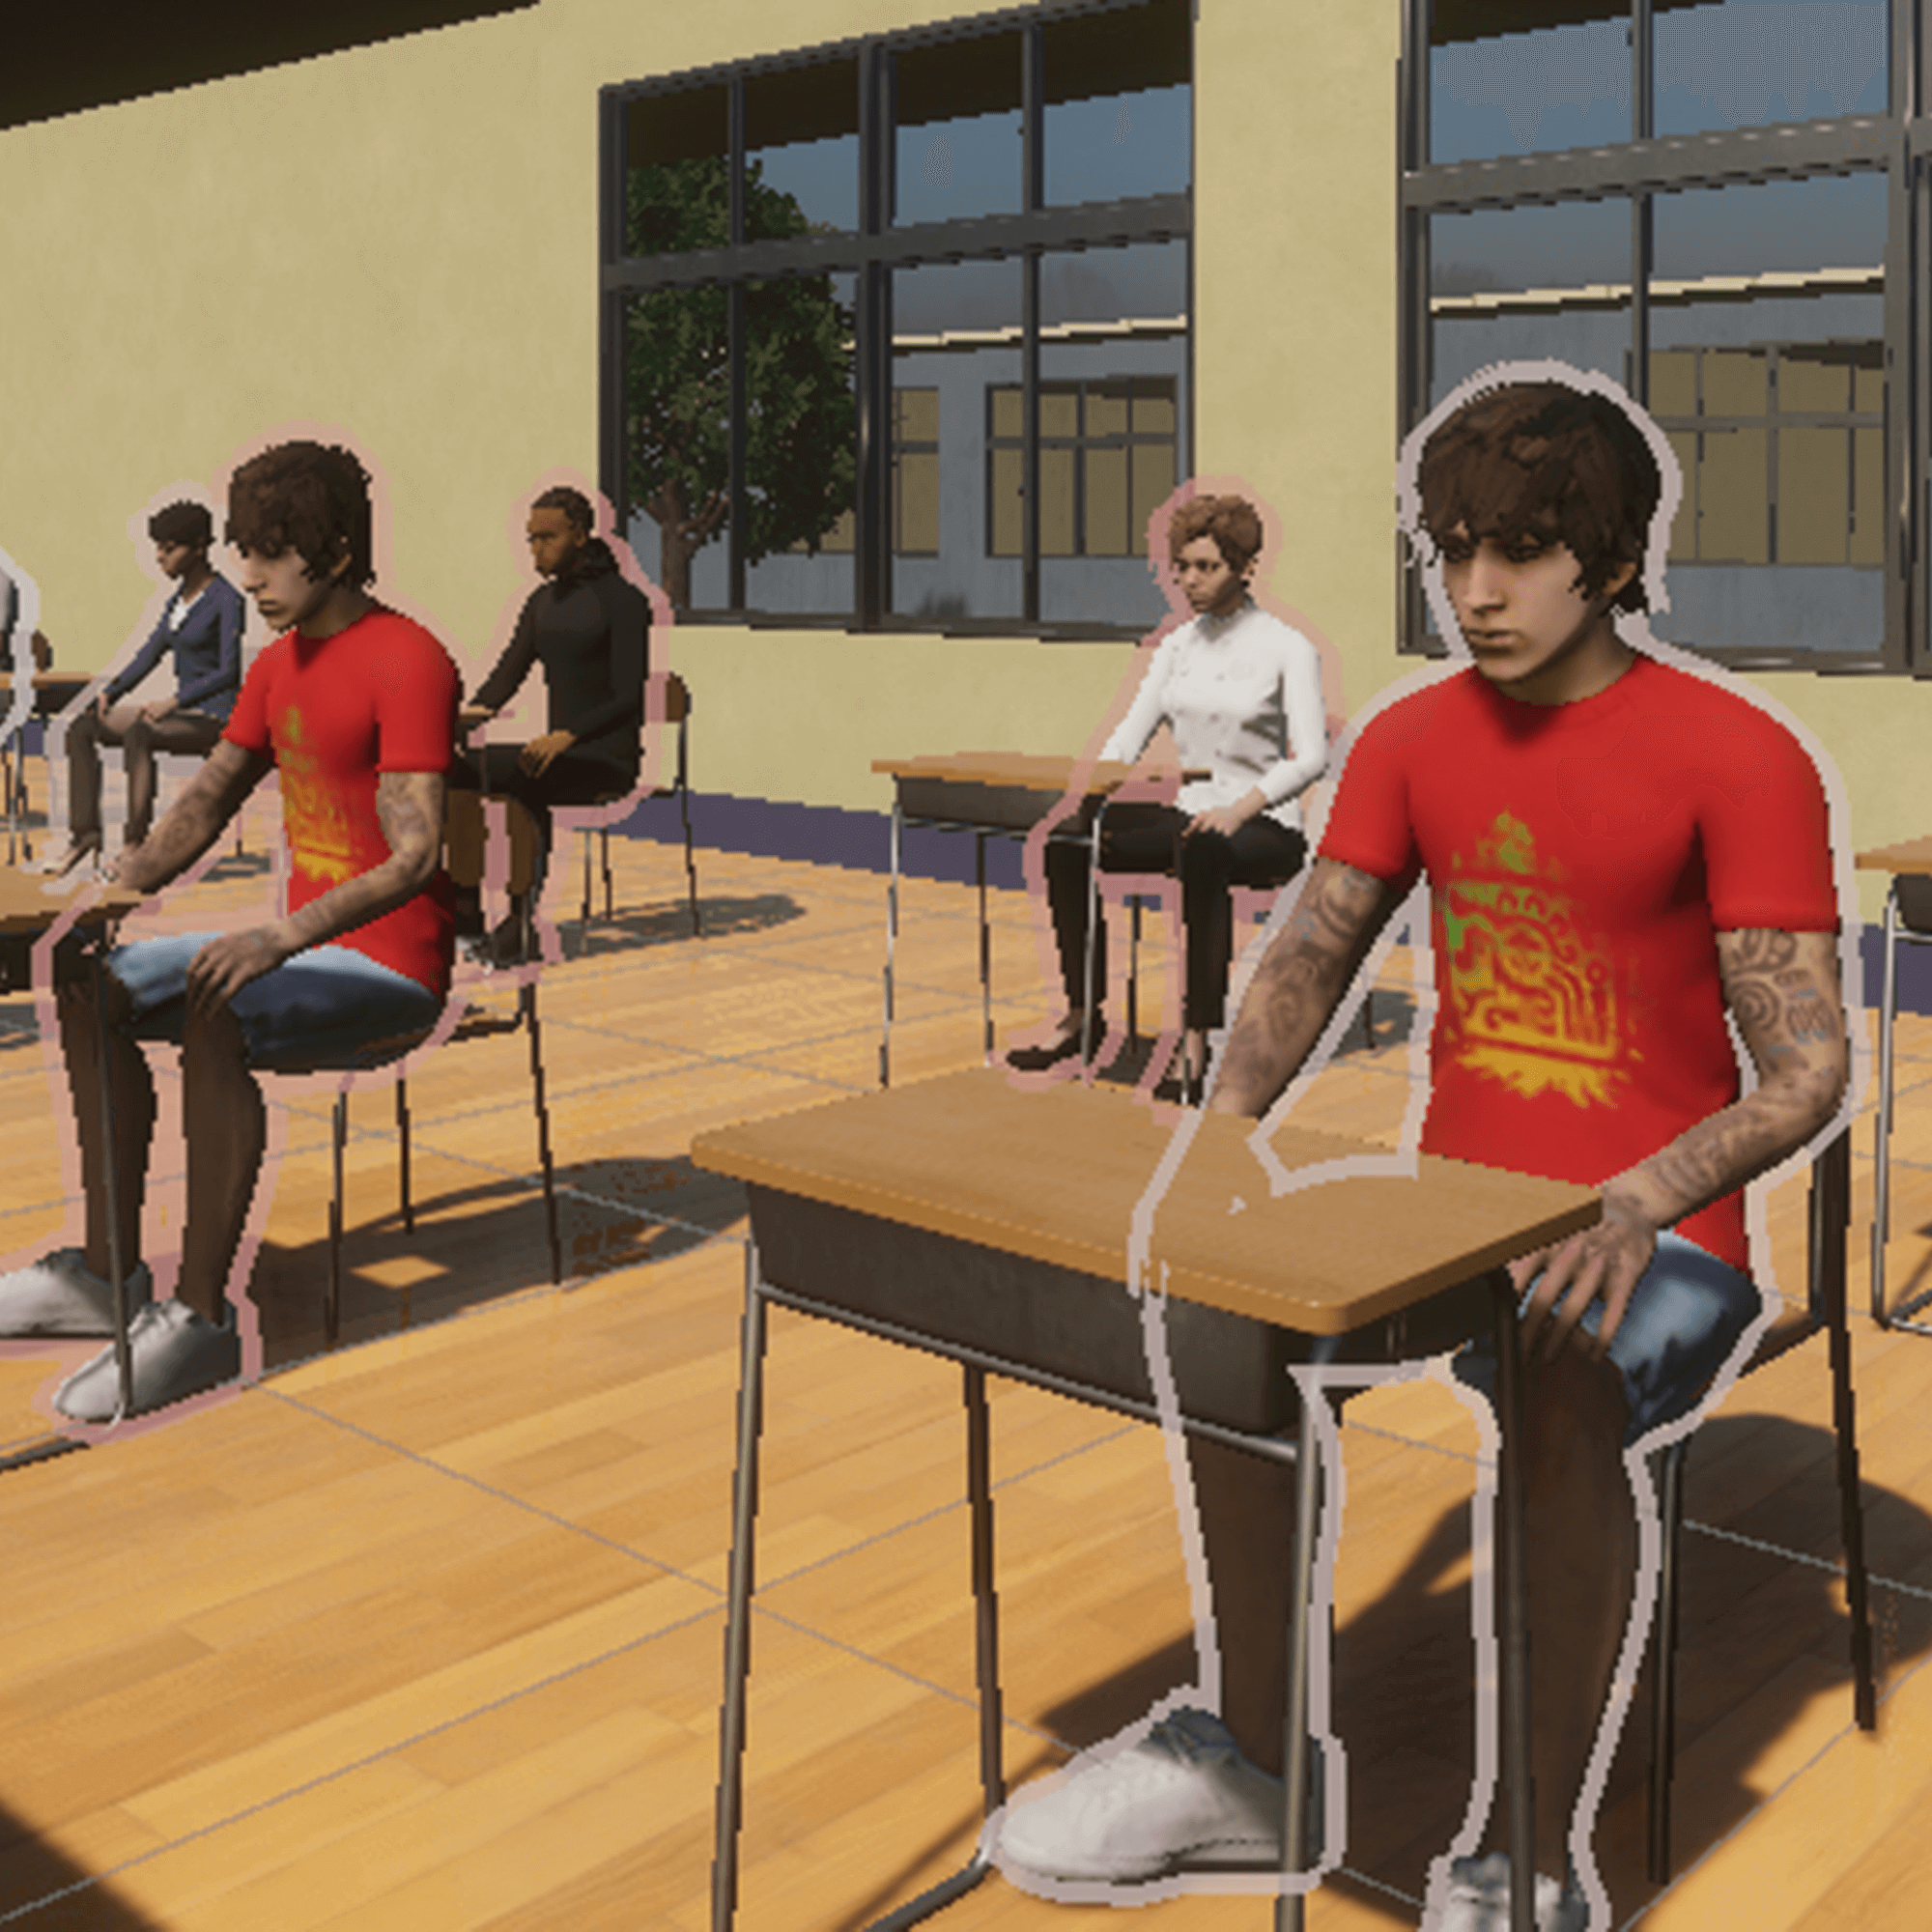 A computerised image of people sat at desks in a classroom